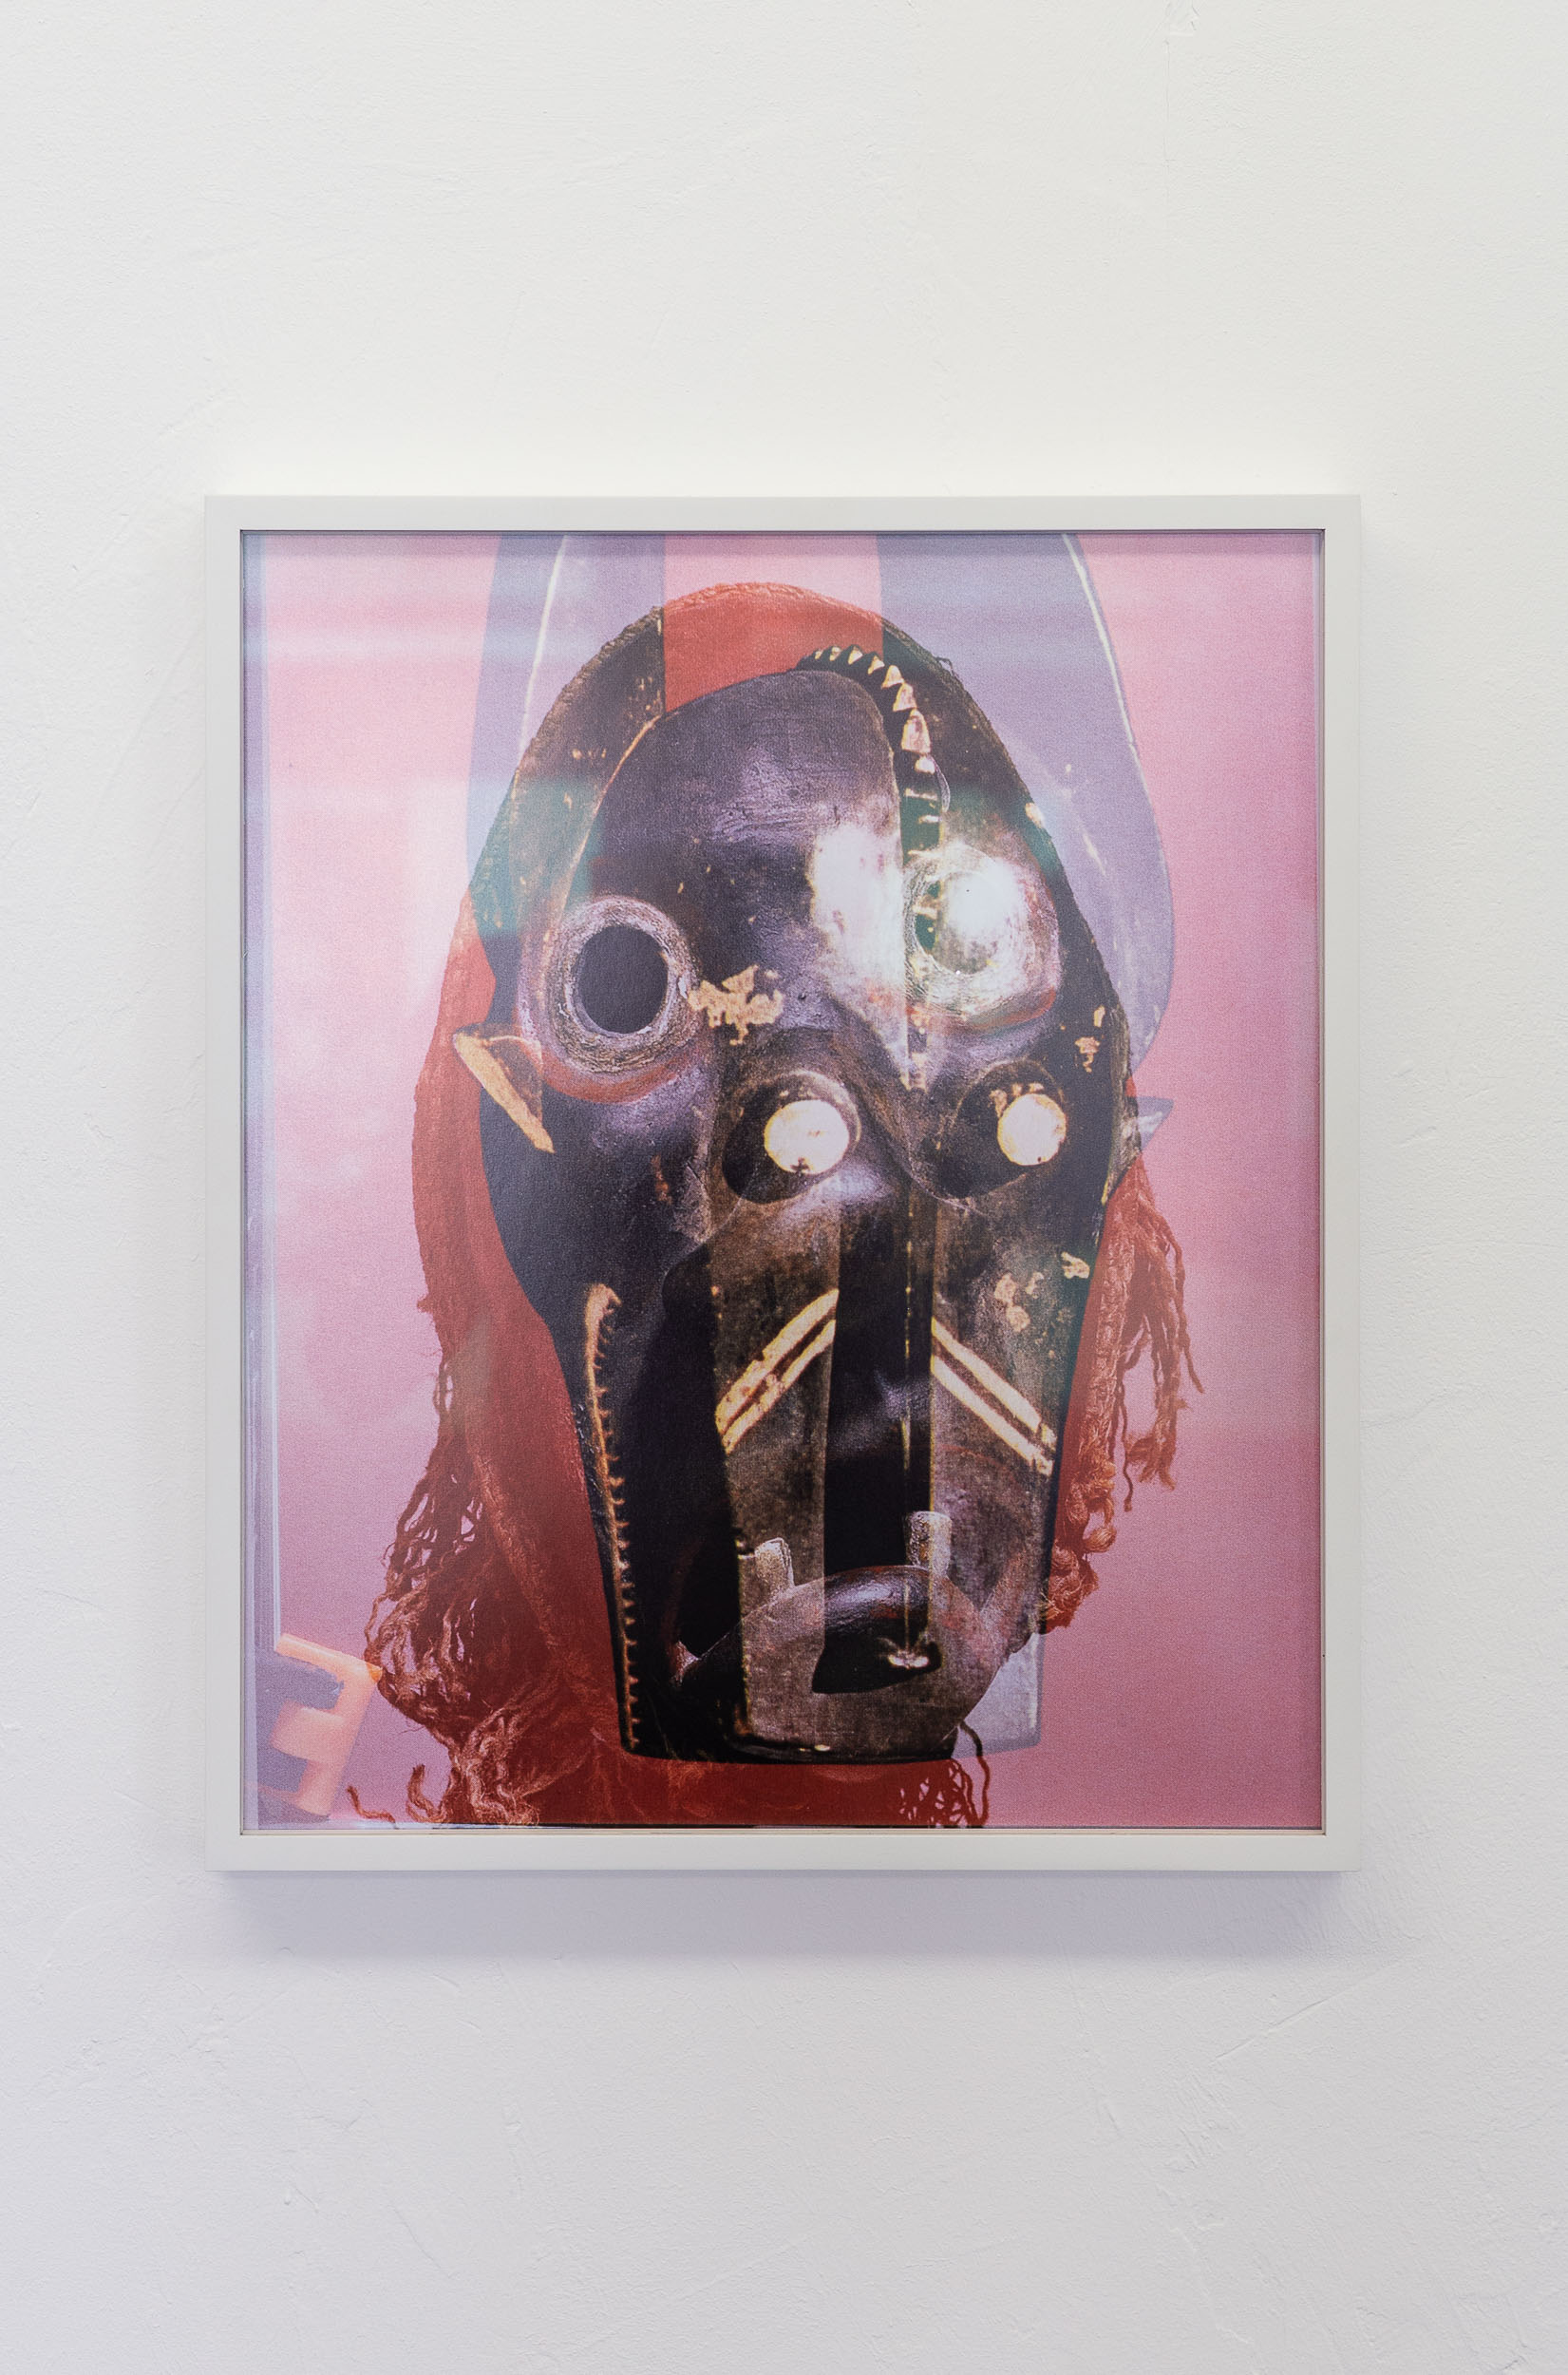 Michael Etzensperger,  Mask  (no. 26), 2016, inkjet prints, 35 x 42 cm  Photo: Kilian Bannwart